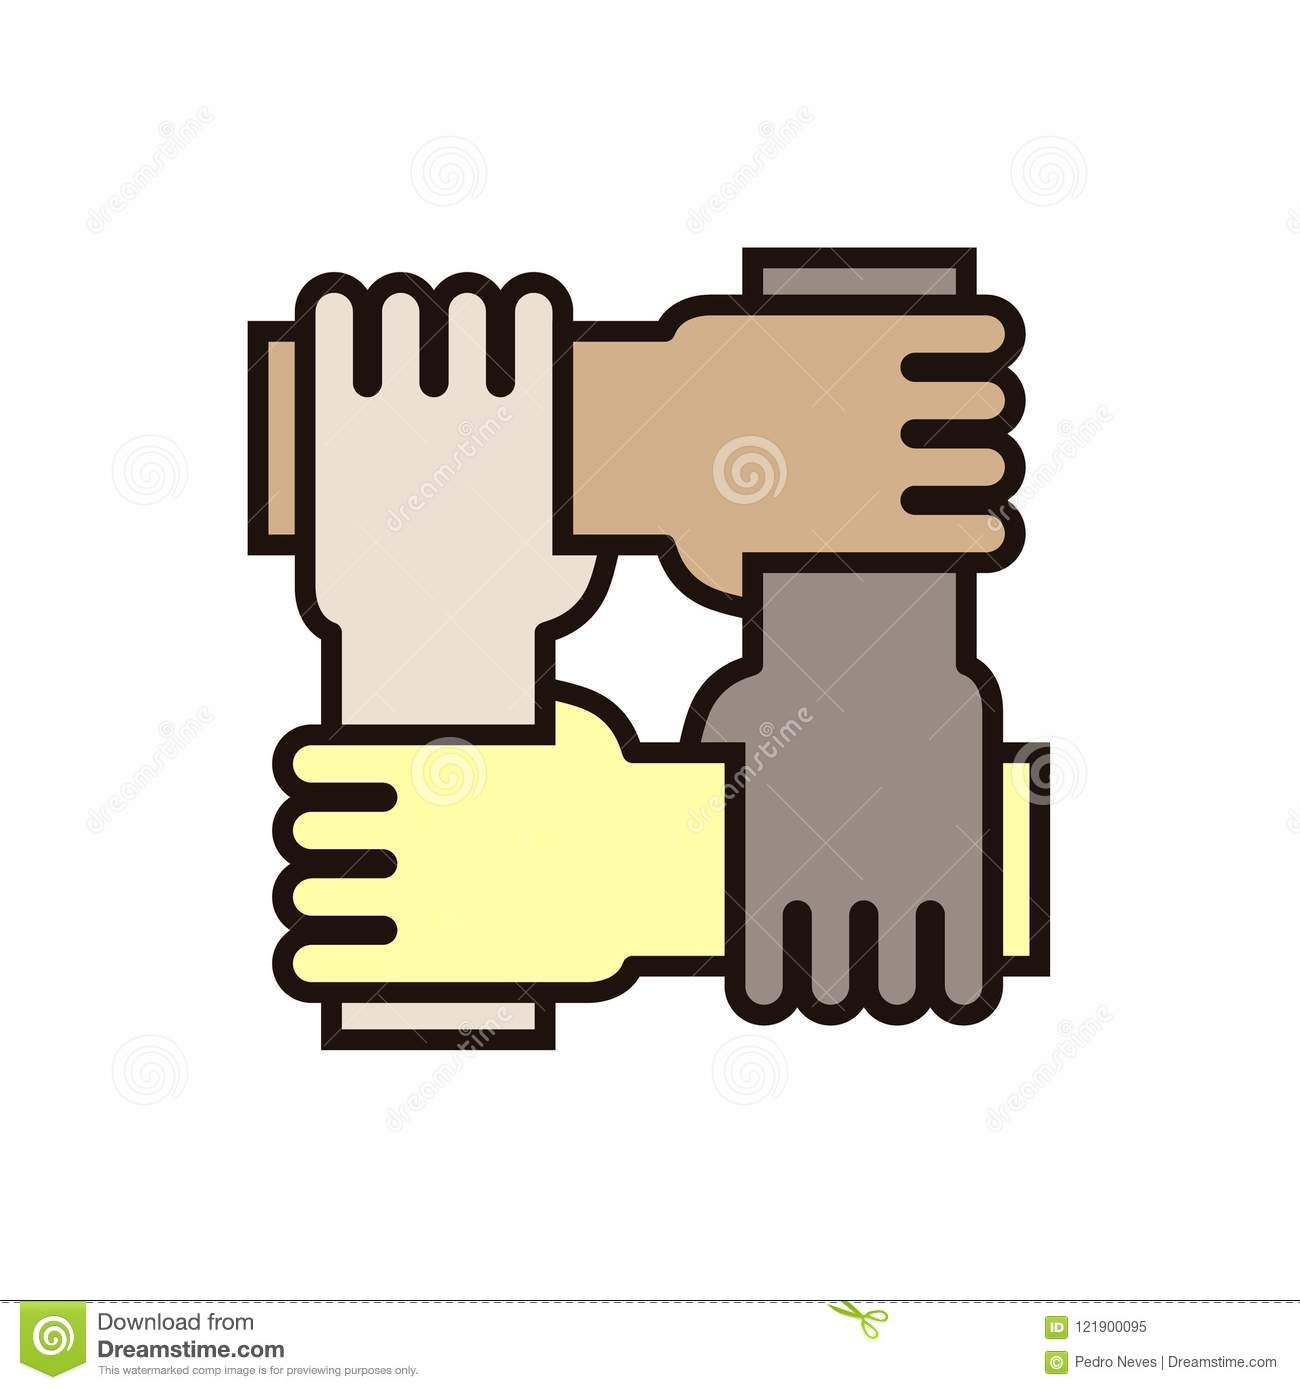 4 hands holding eachother. Vector icon for concepts of racial equality, teamwork, community and charity.